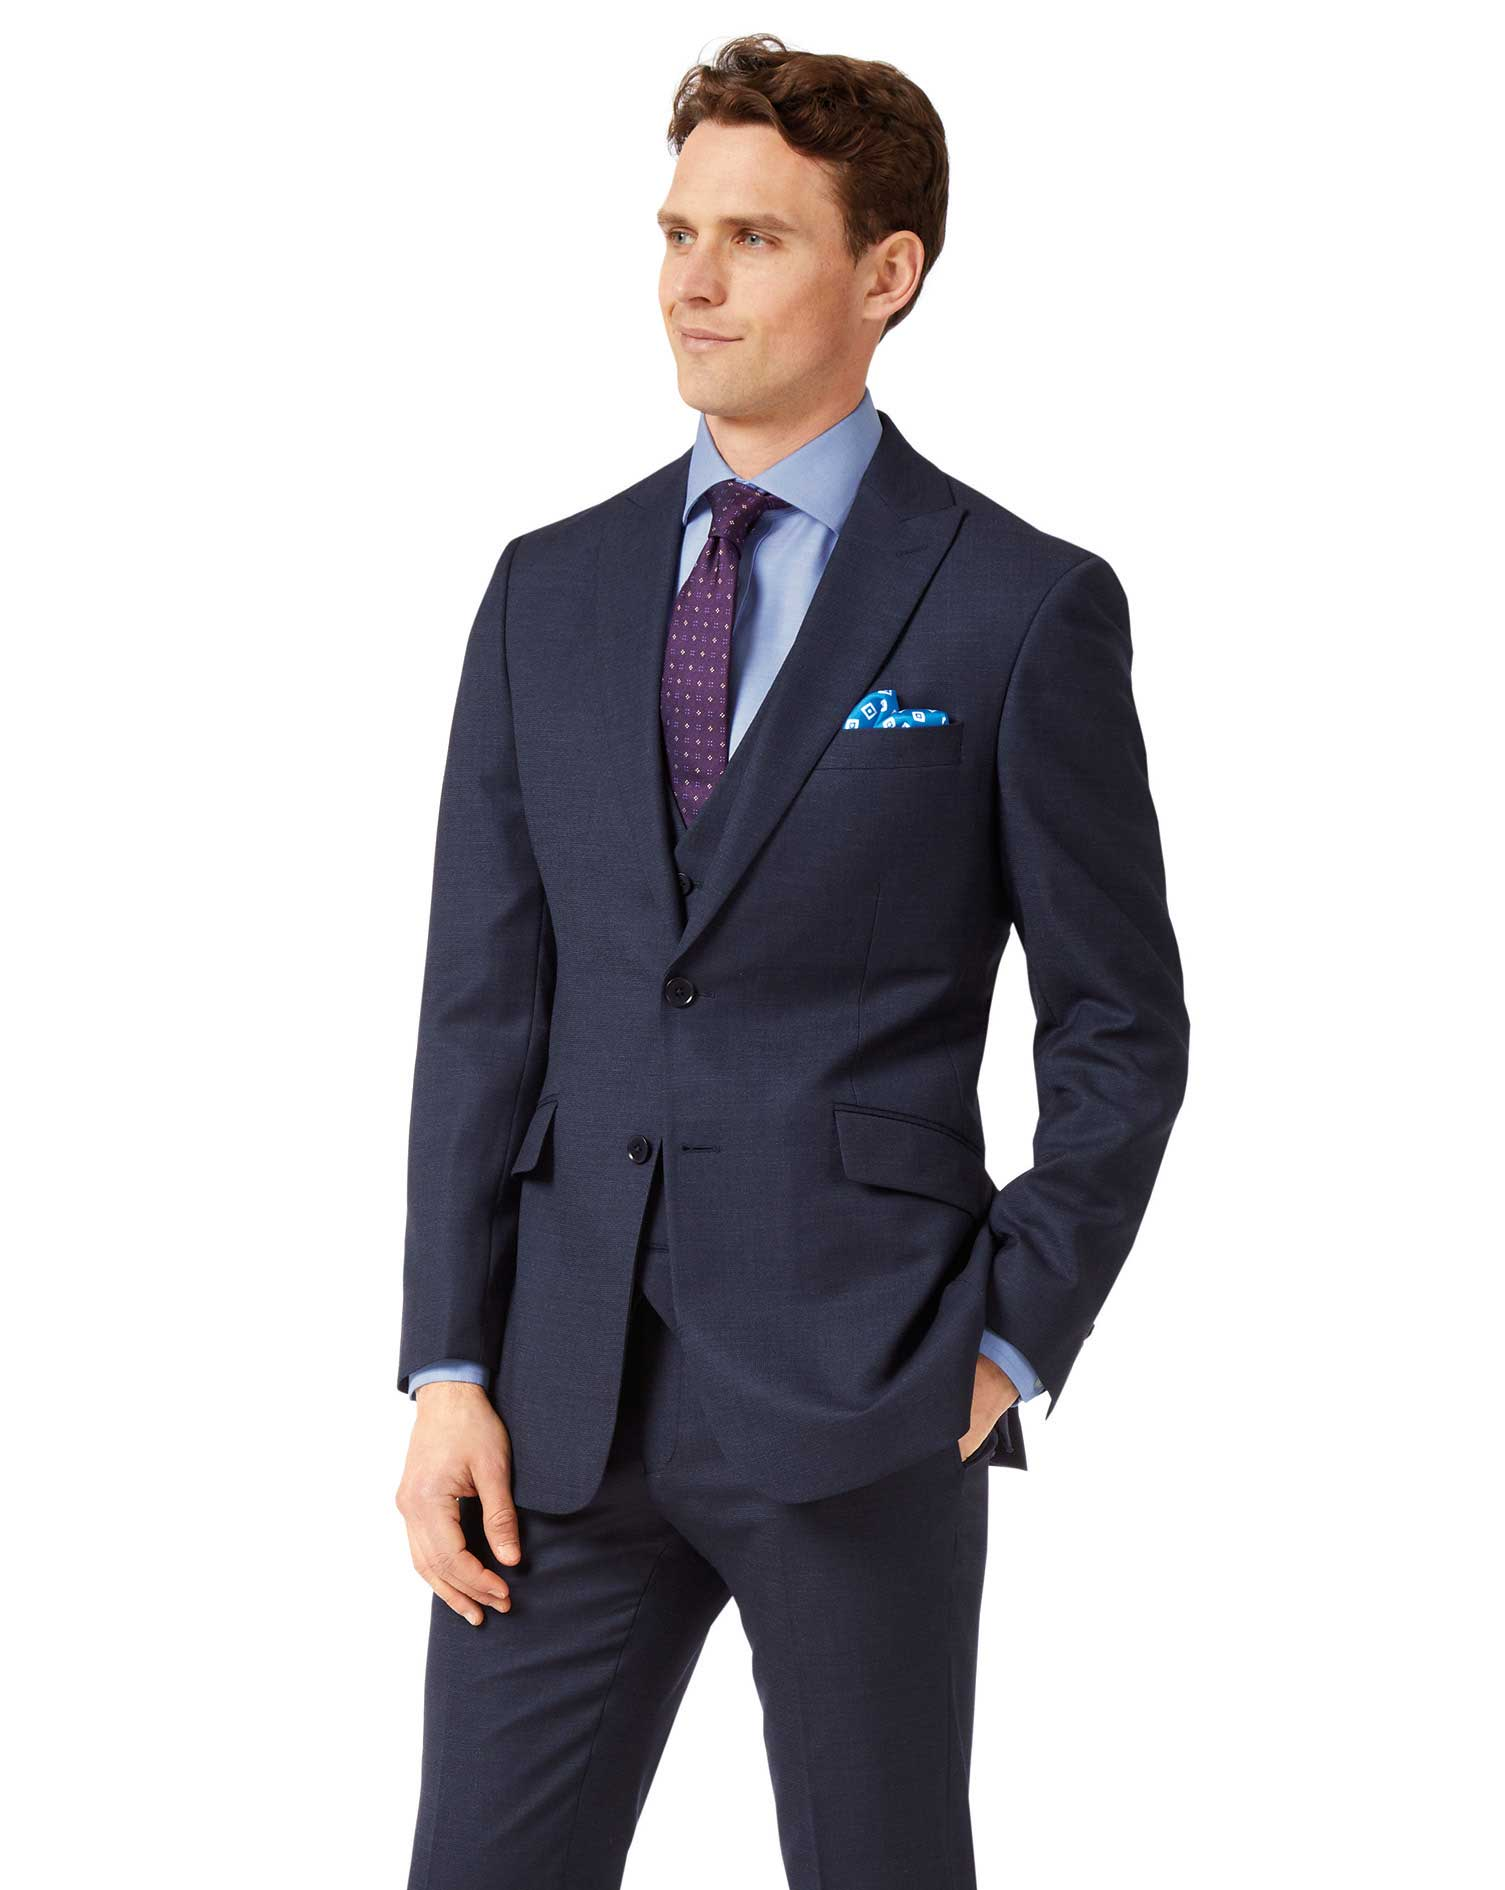 Navy Slim Fit Jaspe Business Suit Wool Jacket Size 44 Long by Charles Tyrwhitt